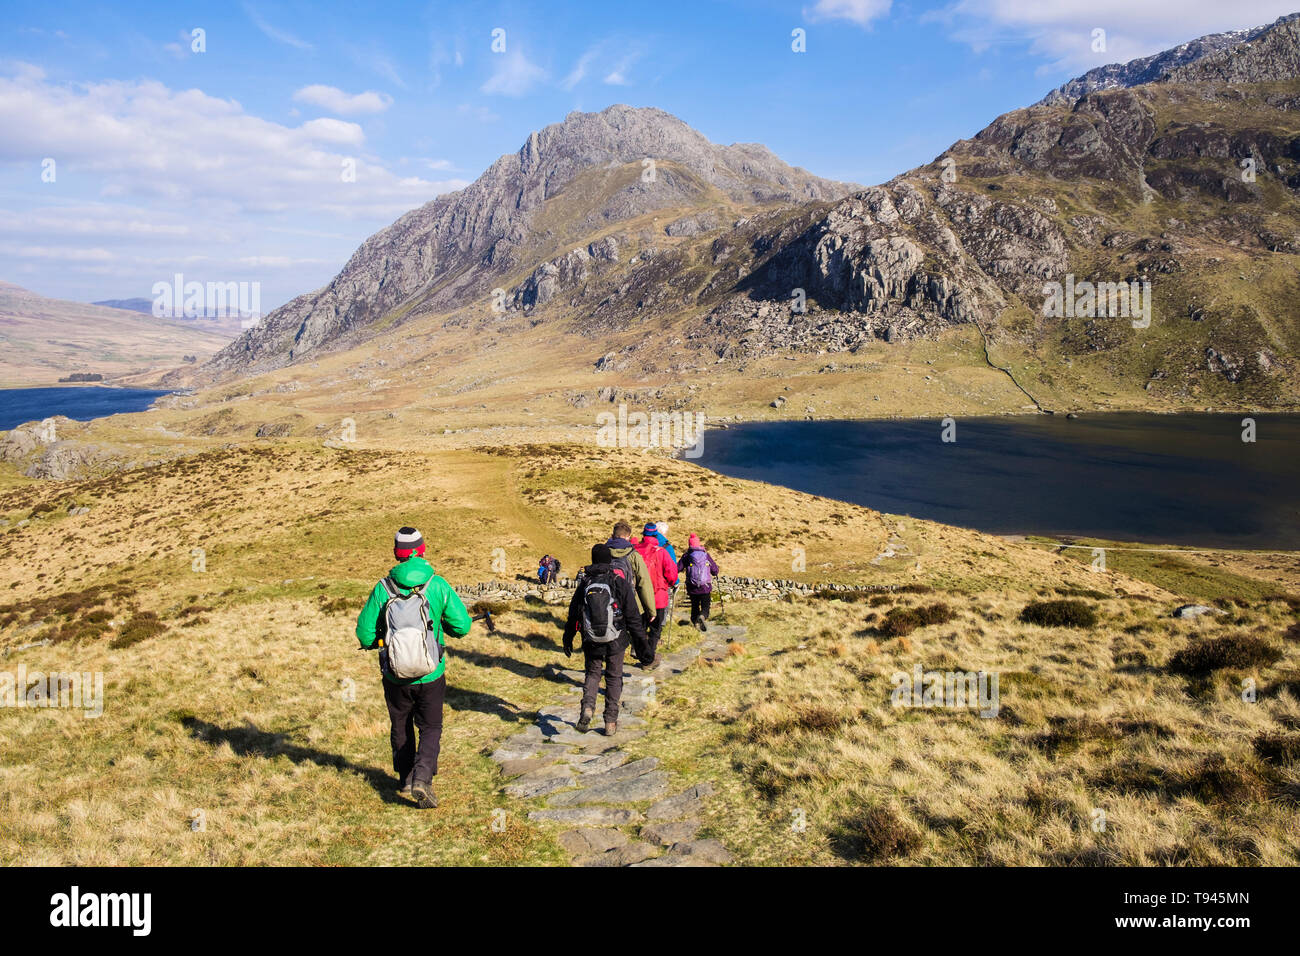 Hikers hiking down Y Garn mountain path to Llyn Idwal lake in Cwm Idwal in mountains of Snowdonia National Park. Ogwen, Gwynedd, Wales, UK, Britain - Stock Image